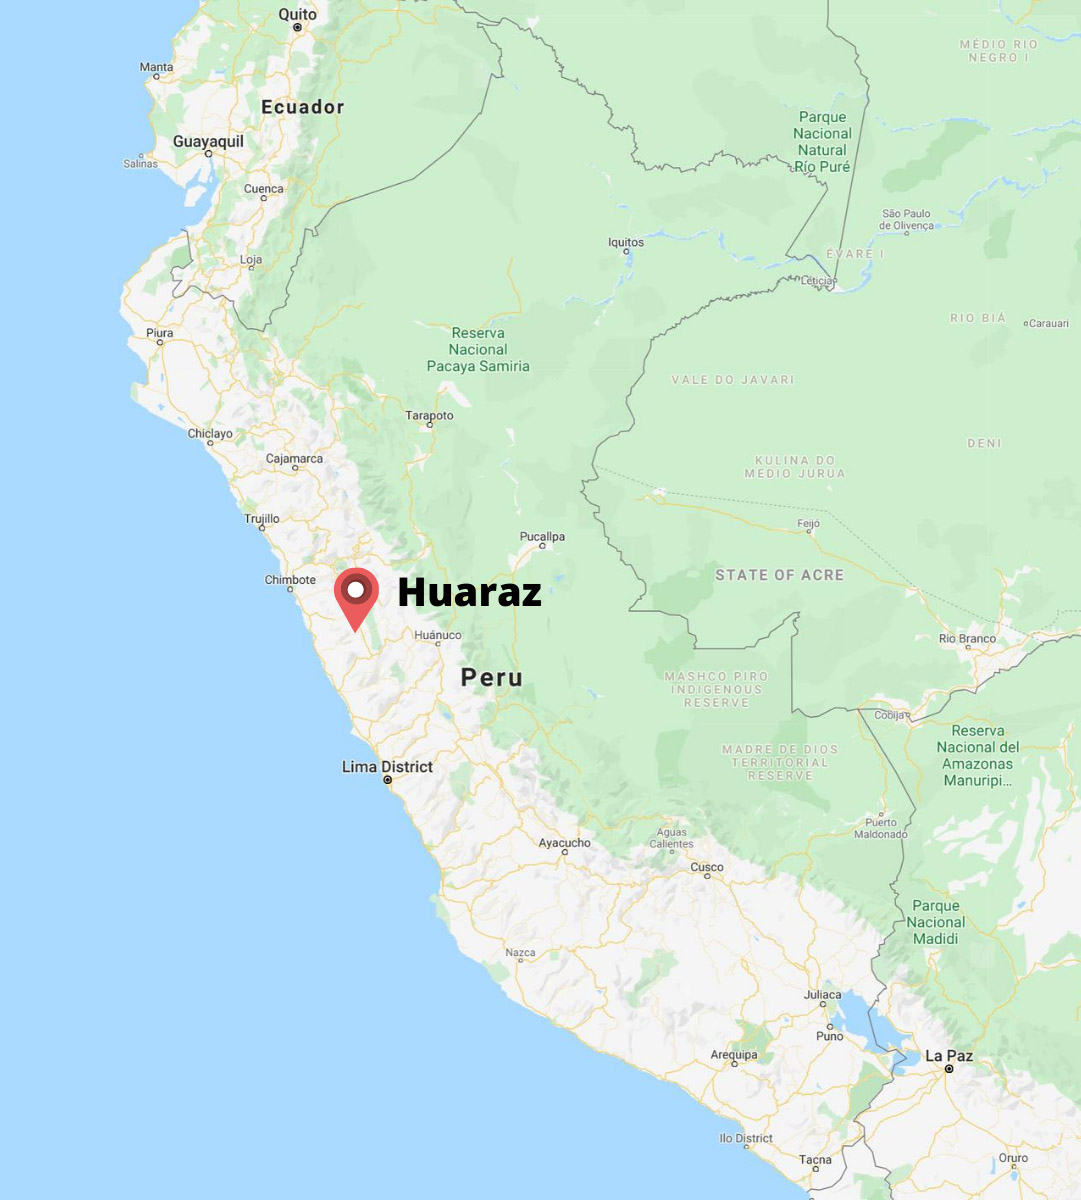 A map of Peru highlighting the city of Huaraz.